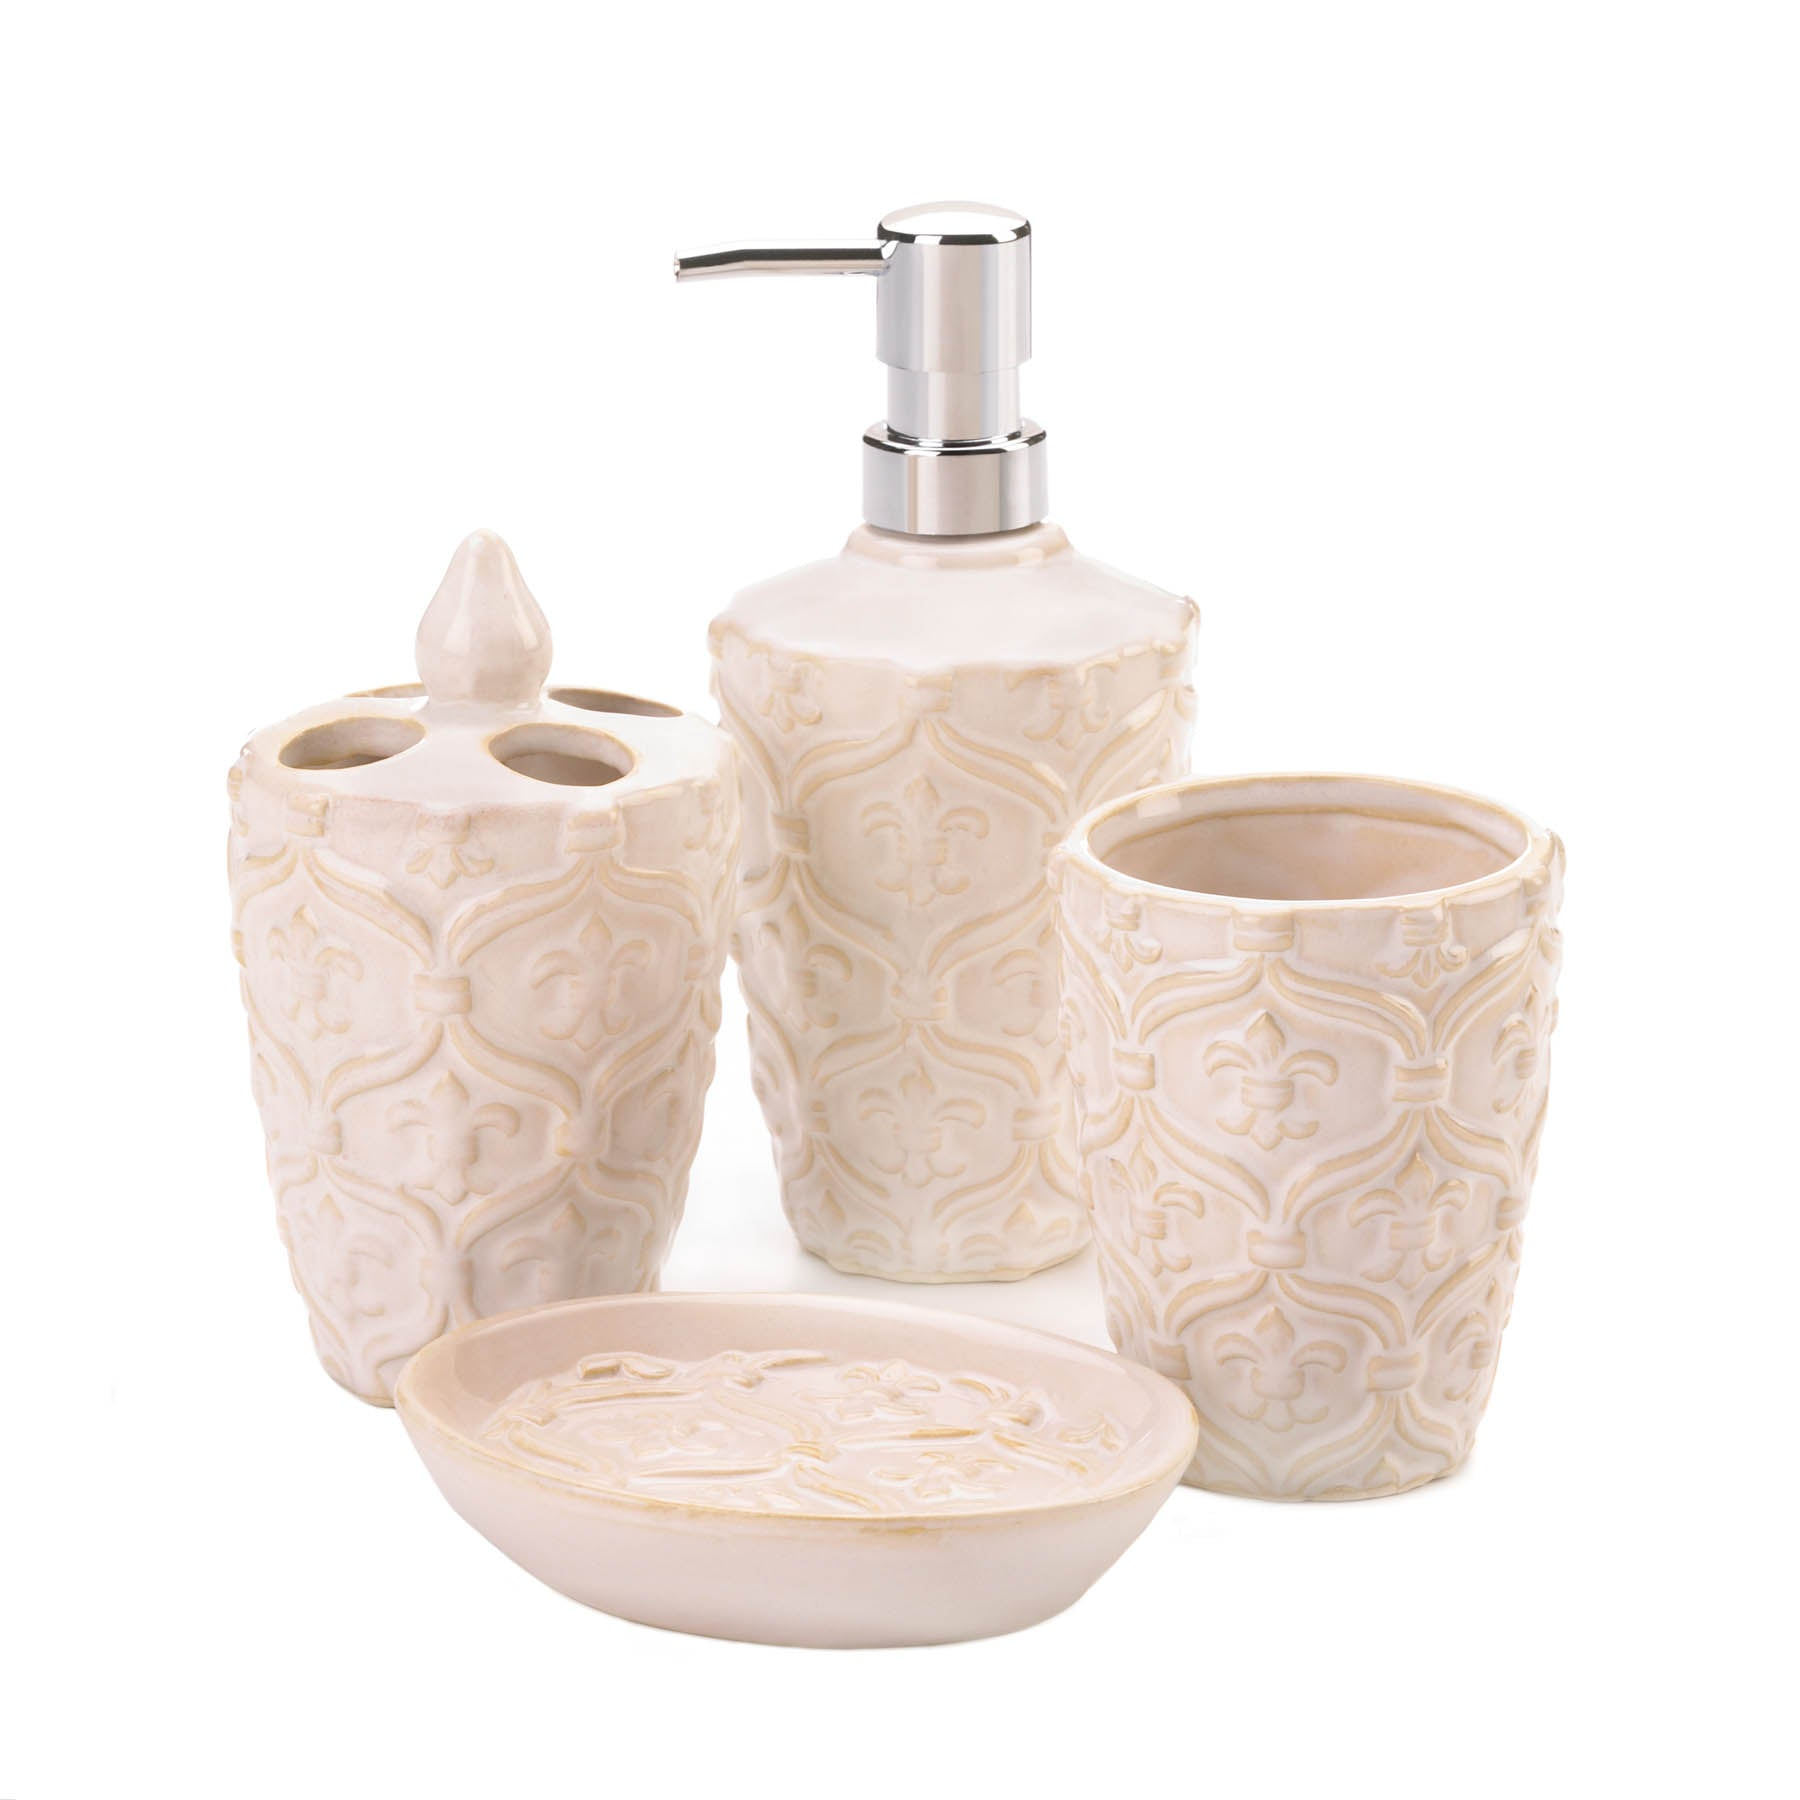 Accent Plus Fleur-De-Lis Bath Accessory Set - 10018748